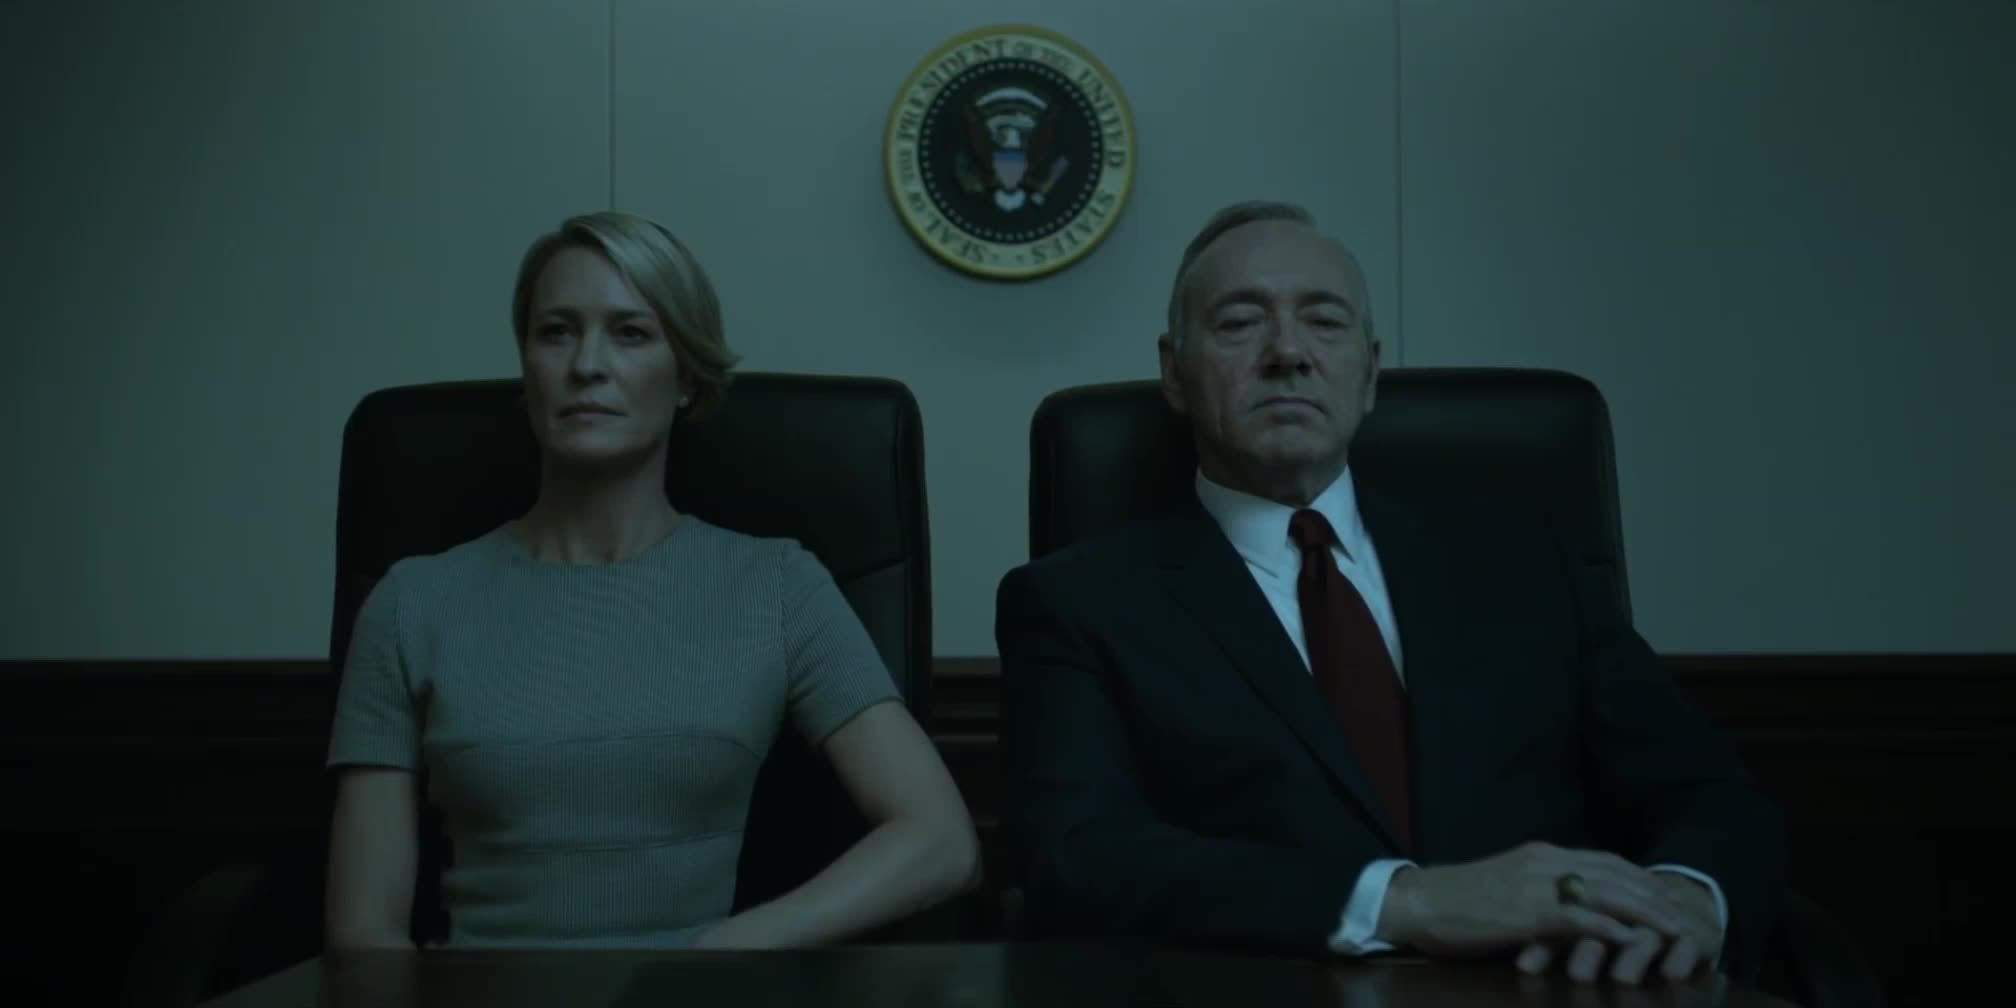 HouseOfCards, Kevin Spacey, houseofcards, You are not invisible GIFs